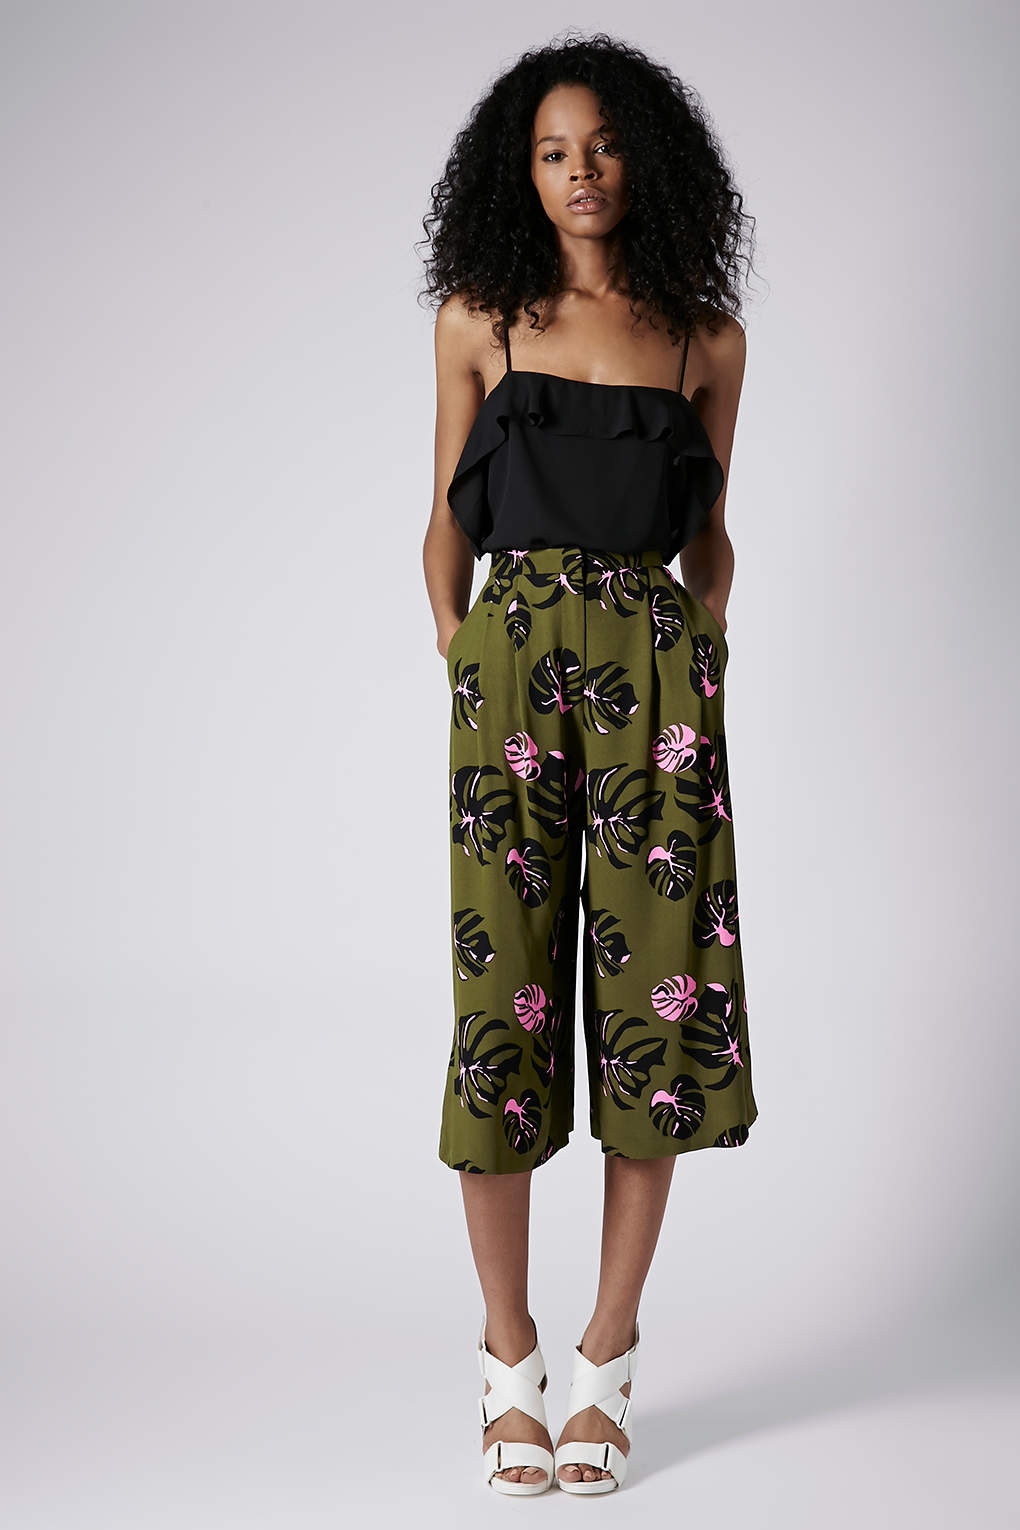 culottes, topshop, her source vices, summer bottoms, nyc,